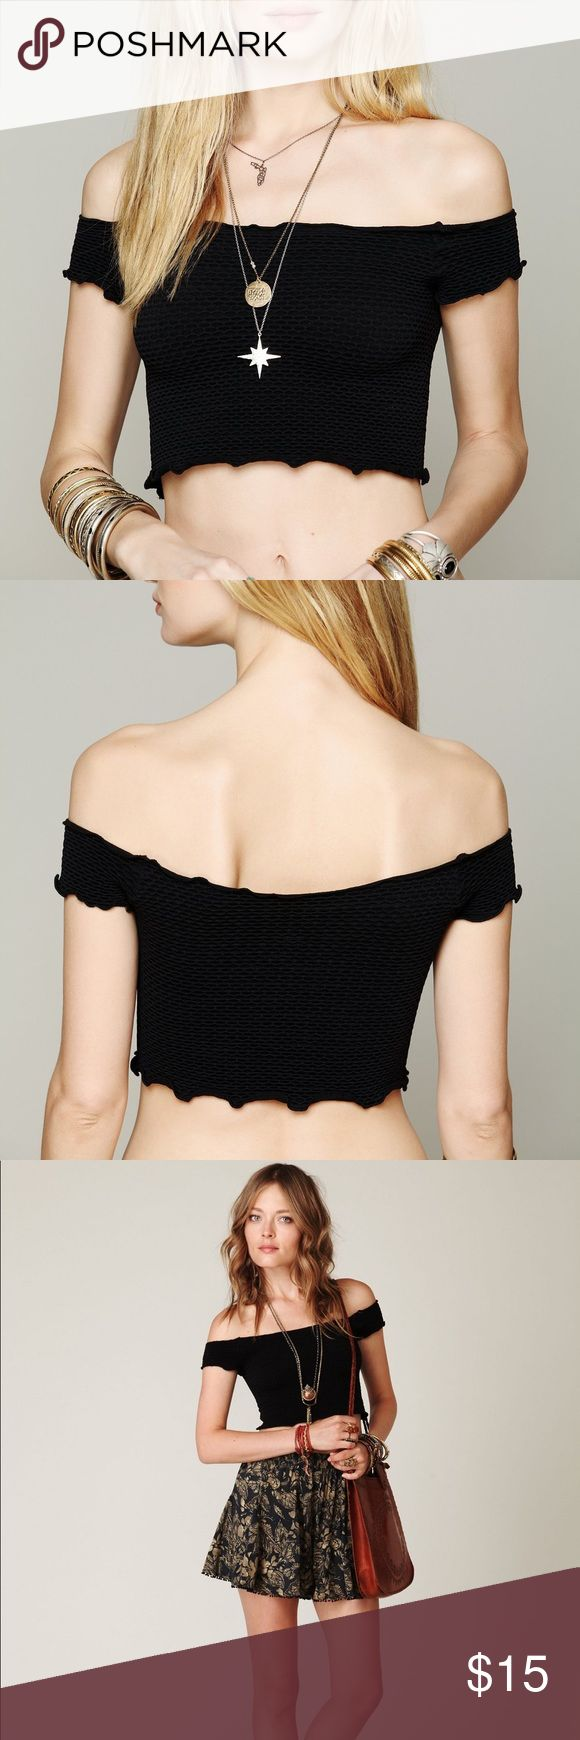 Free People Smocked Crop Top Intimately FP crop top in black. Worn a few times and in good condition. Size x-small/small Free People Tops Crop Tops